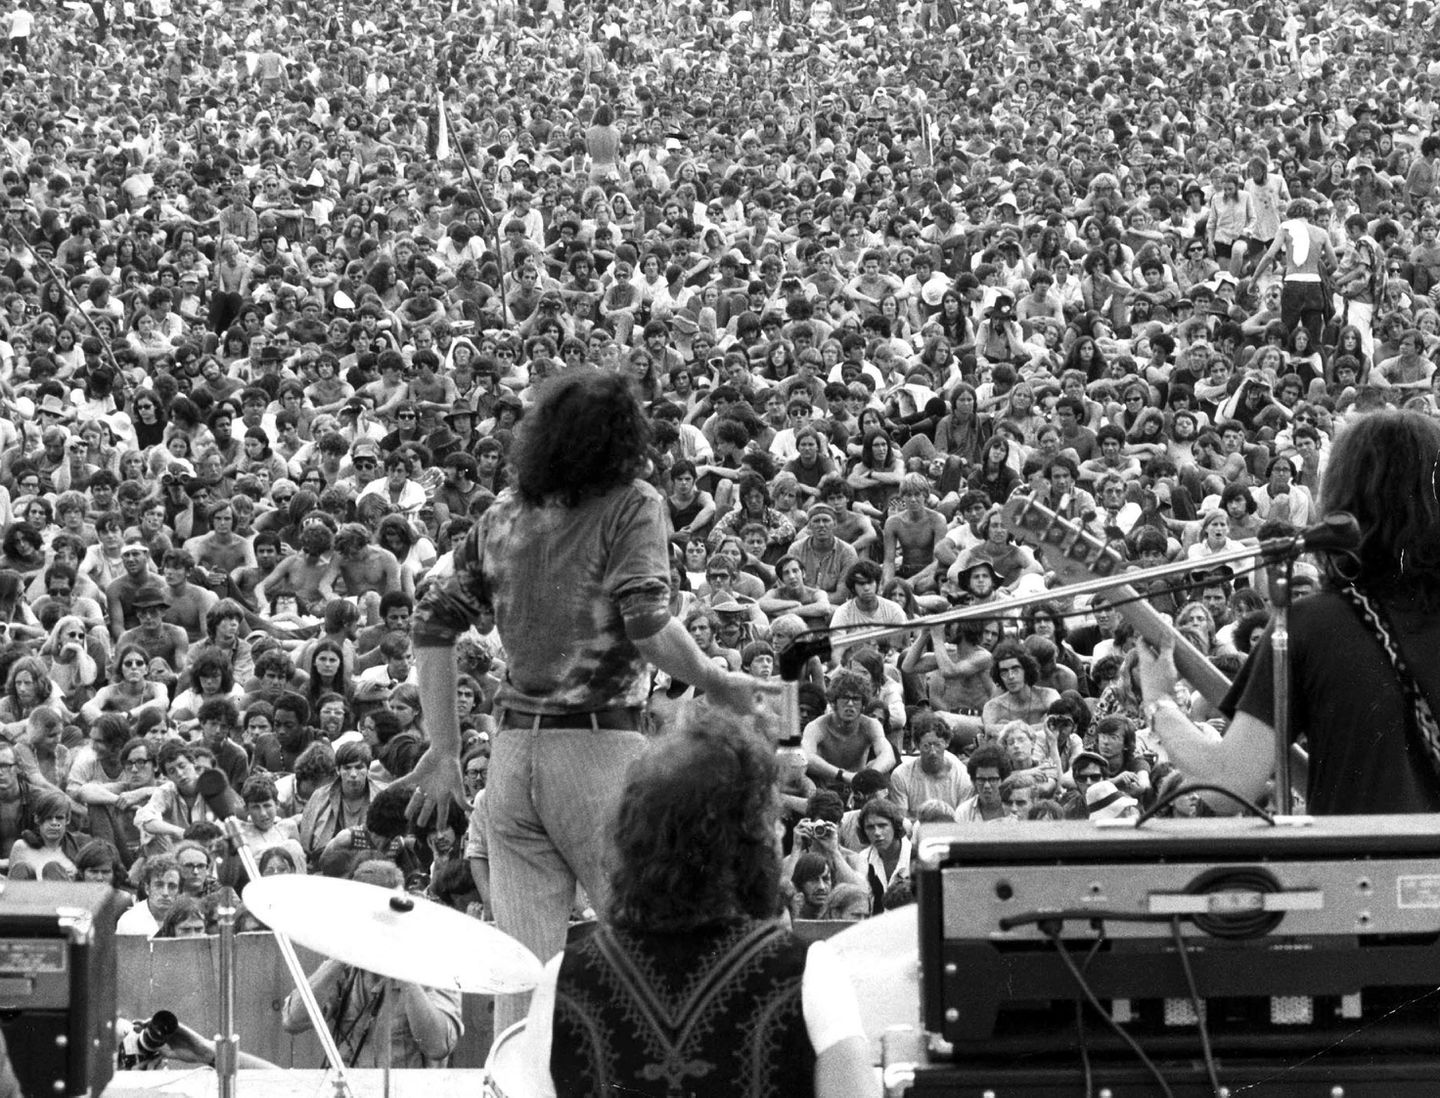 Original Woodstock Site To Host 50th Anniversary Concert